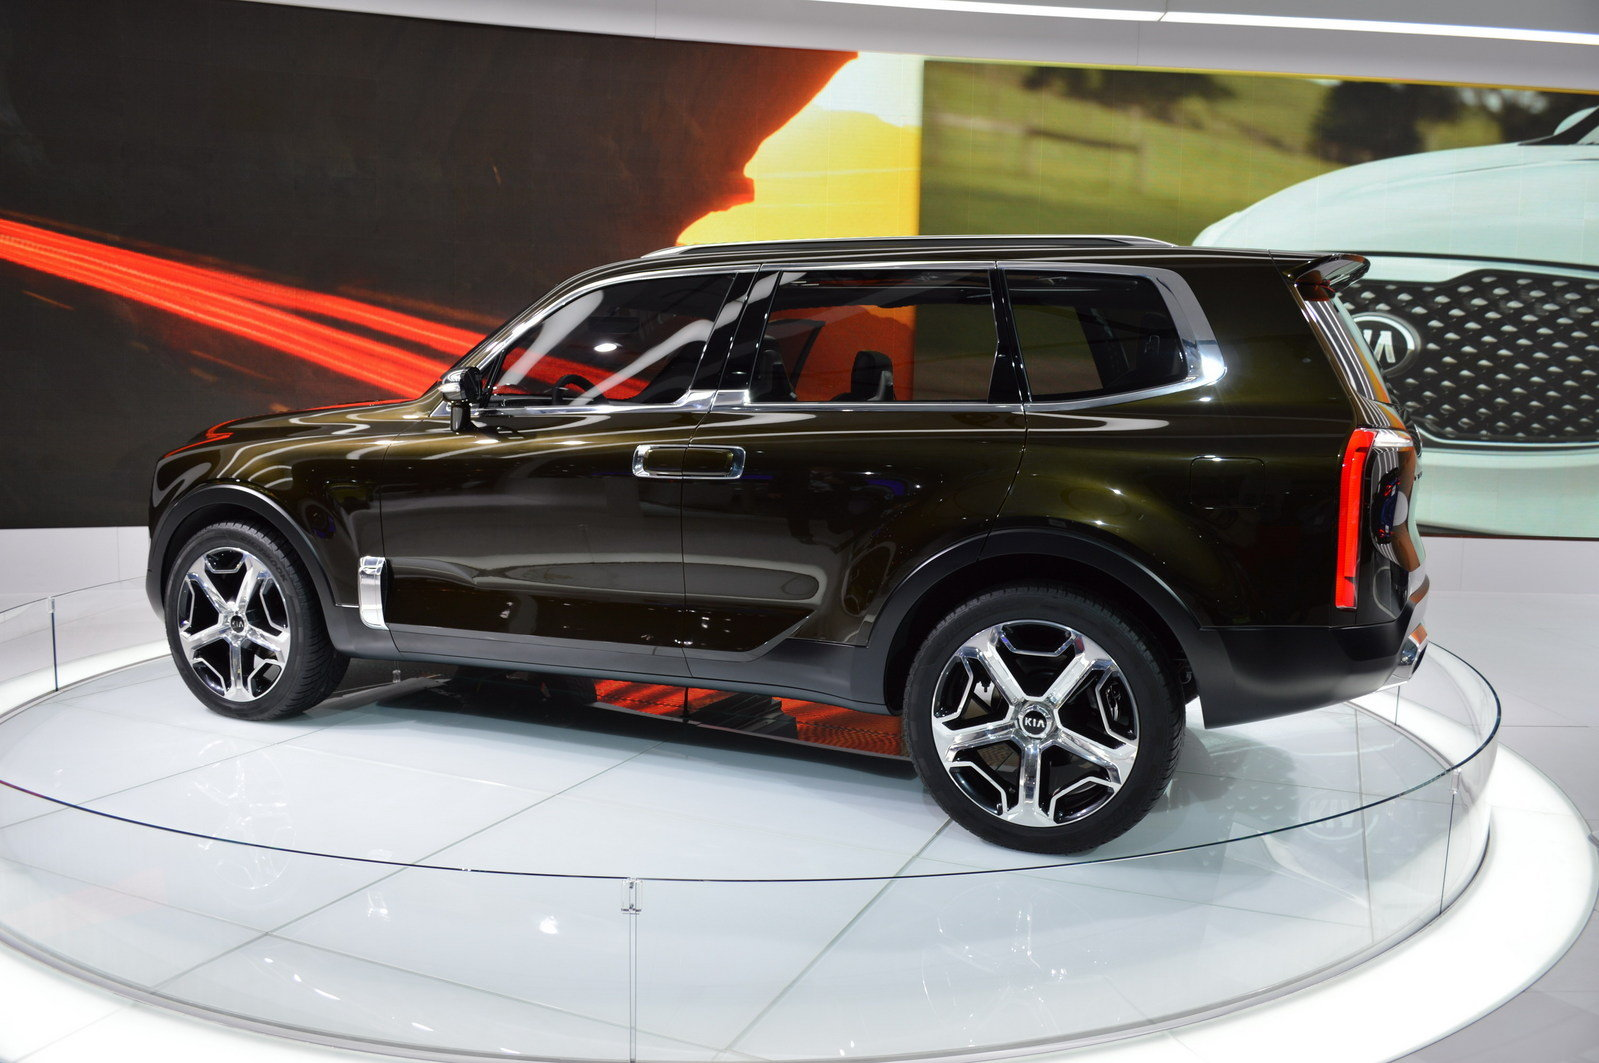 2016 kia telluride concept picture 661771 car review top speed. Black Bedroom Furniture Sets. Home Design Ideas